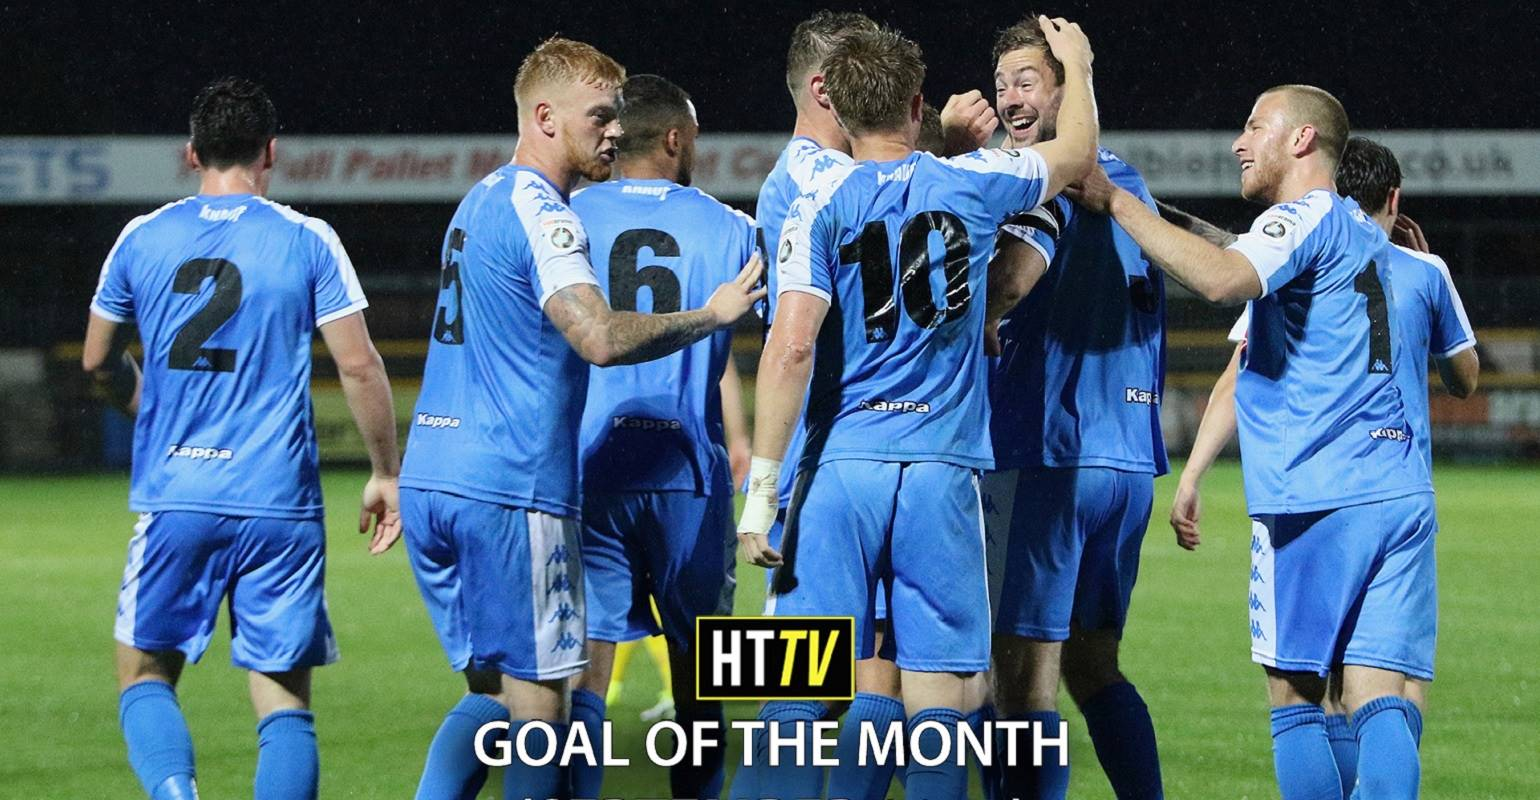 September Goal of the Month